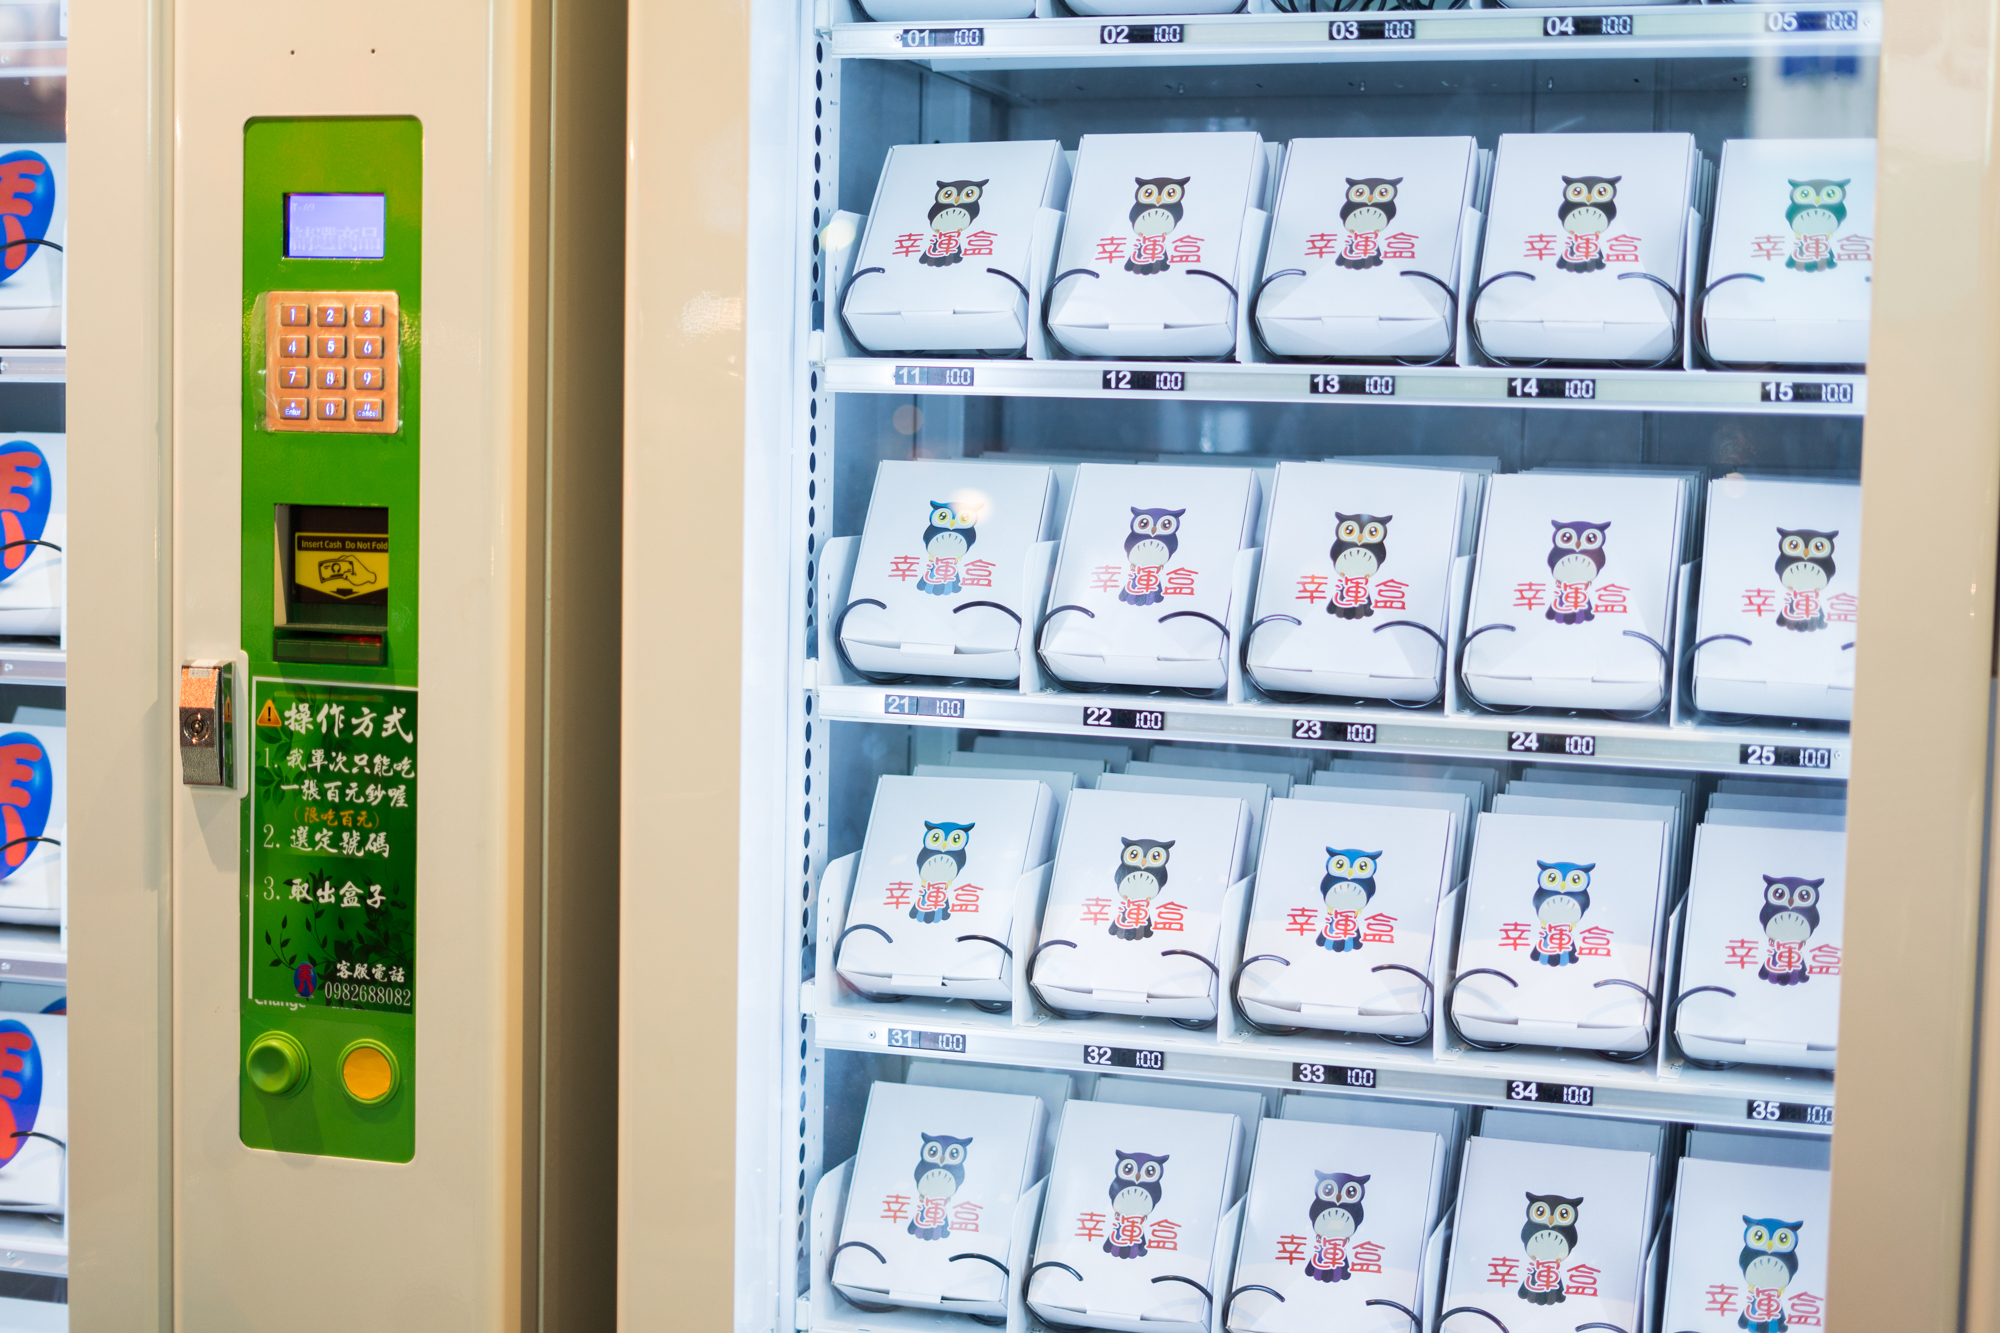 Grab Bag Vending Machines in Taiwan